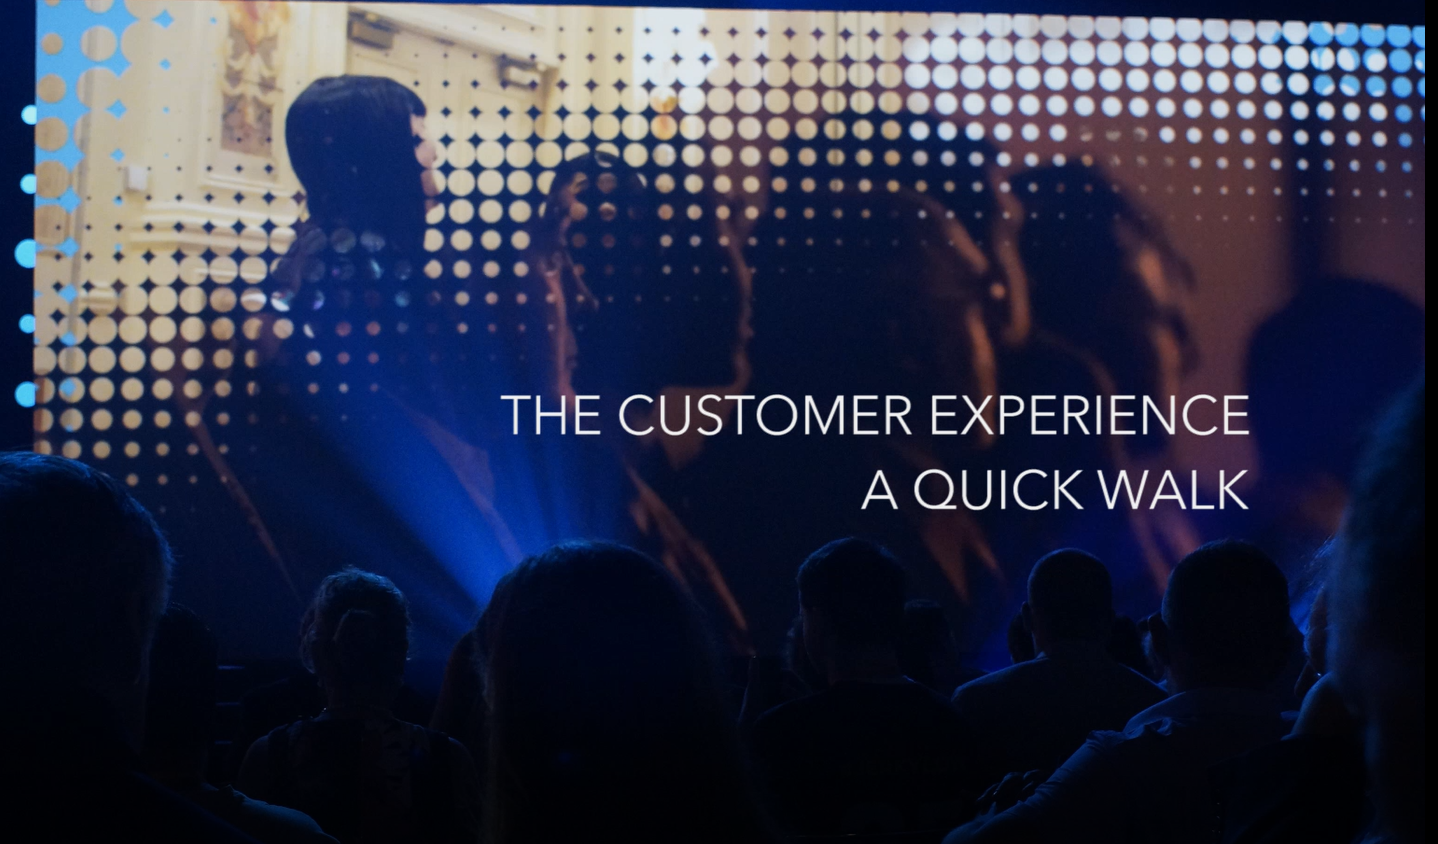 NEW VIDEO: The Customer EXP. Essential viewing.